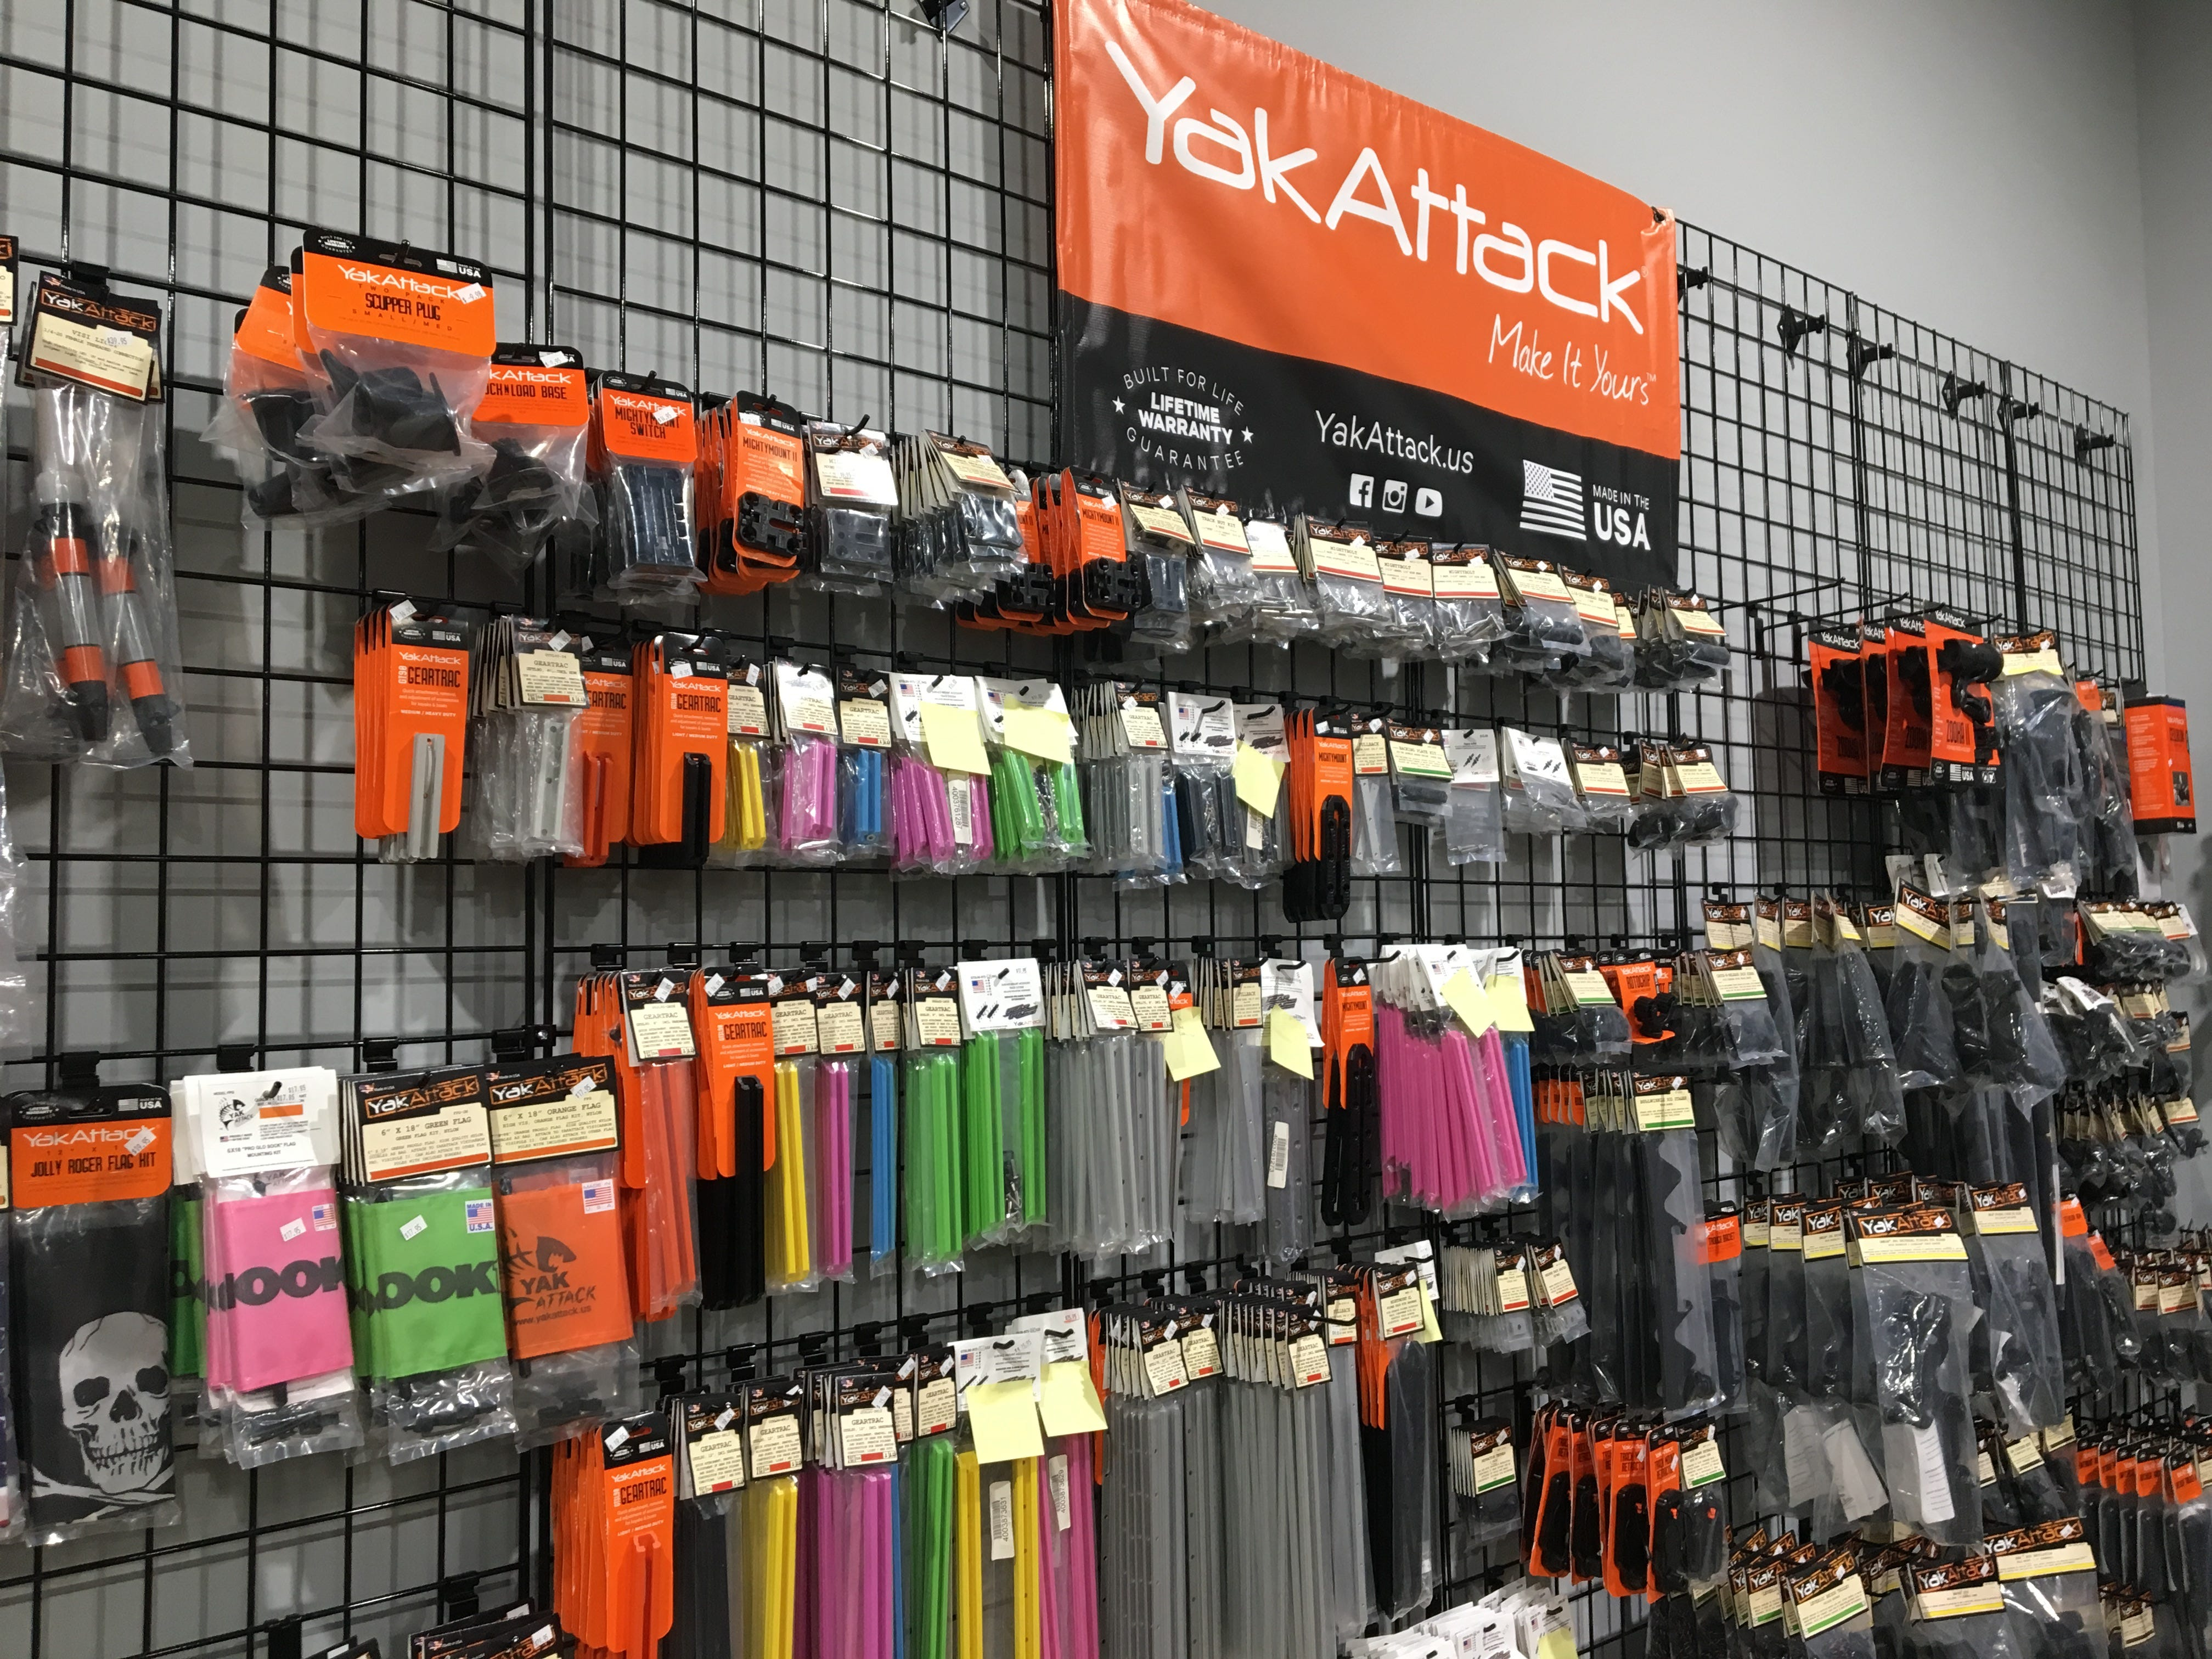 Hook 1 outfitters in Murfreesboro sells accessories for your fishing kayak.